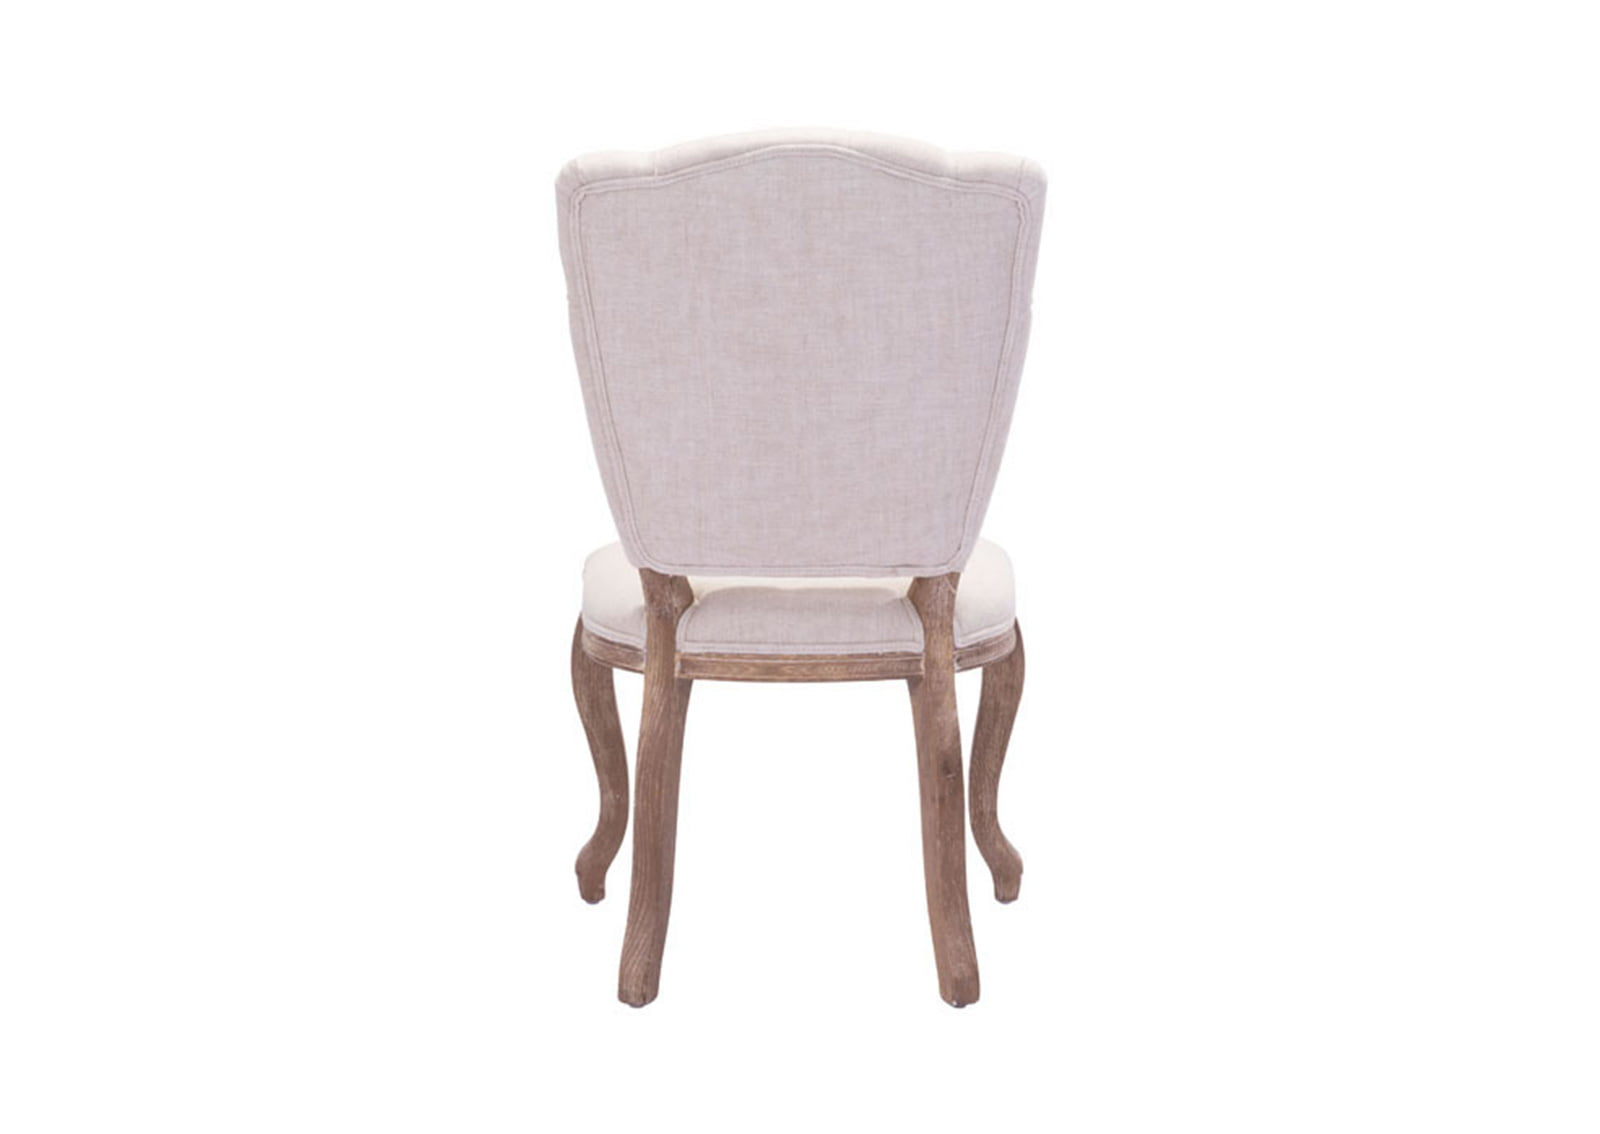 beige dining chairs office max weight 150kg eddy chair furnishplus